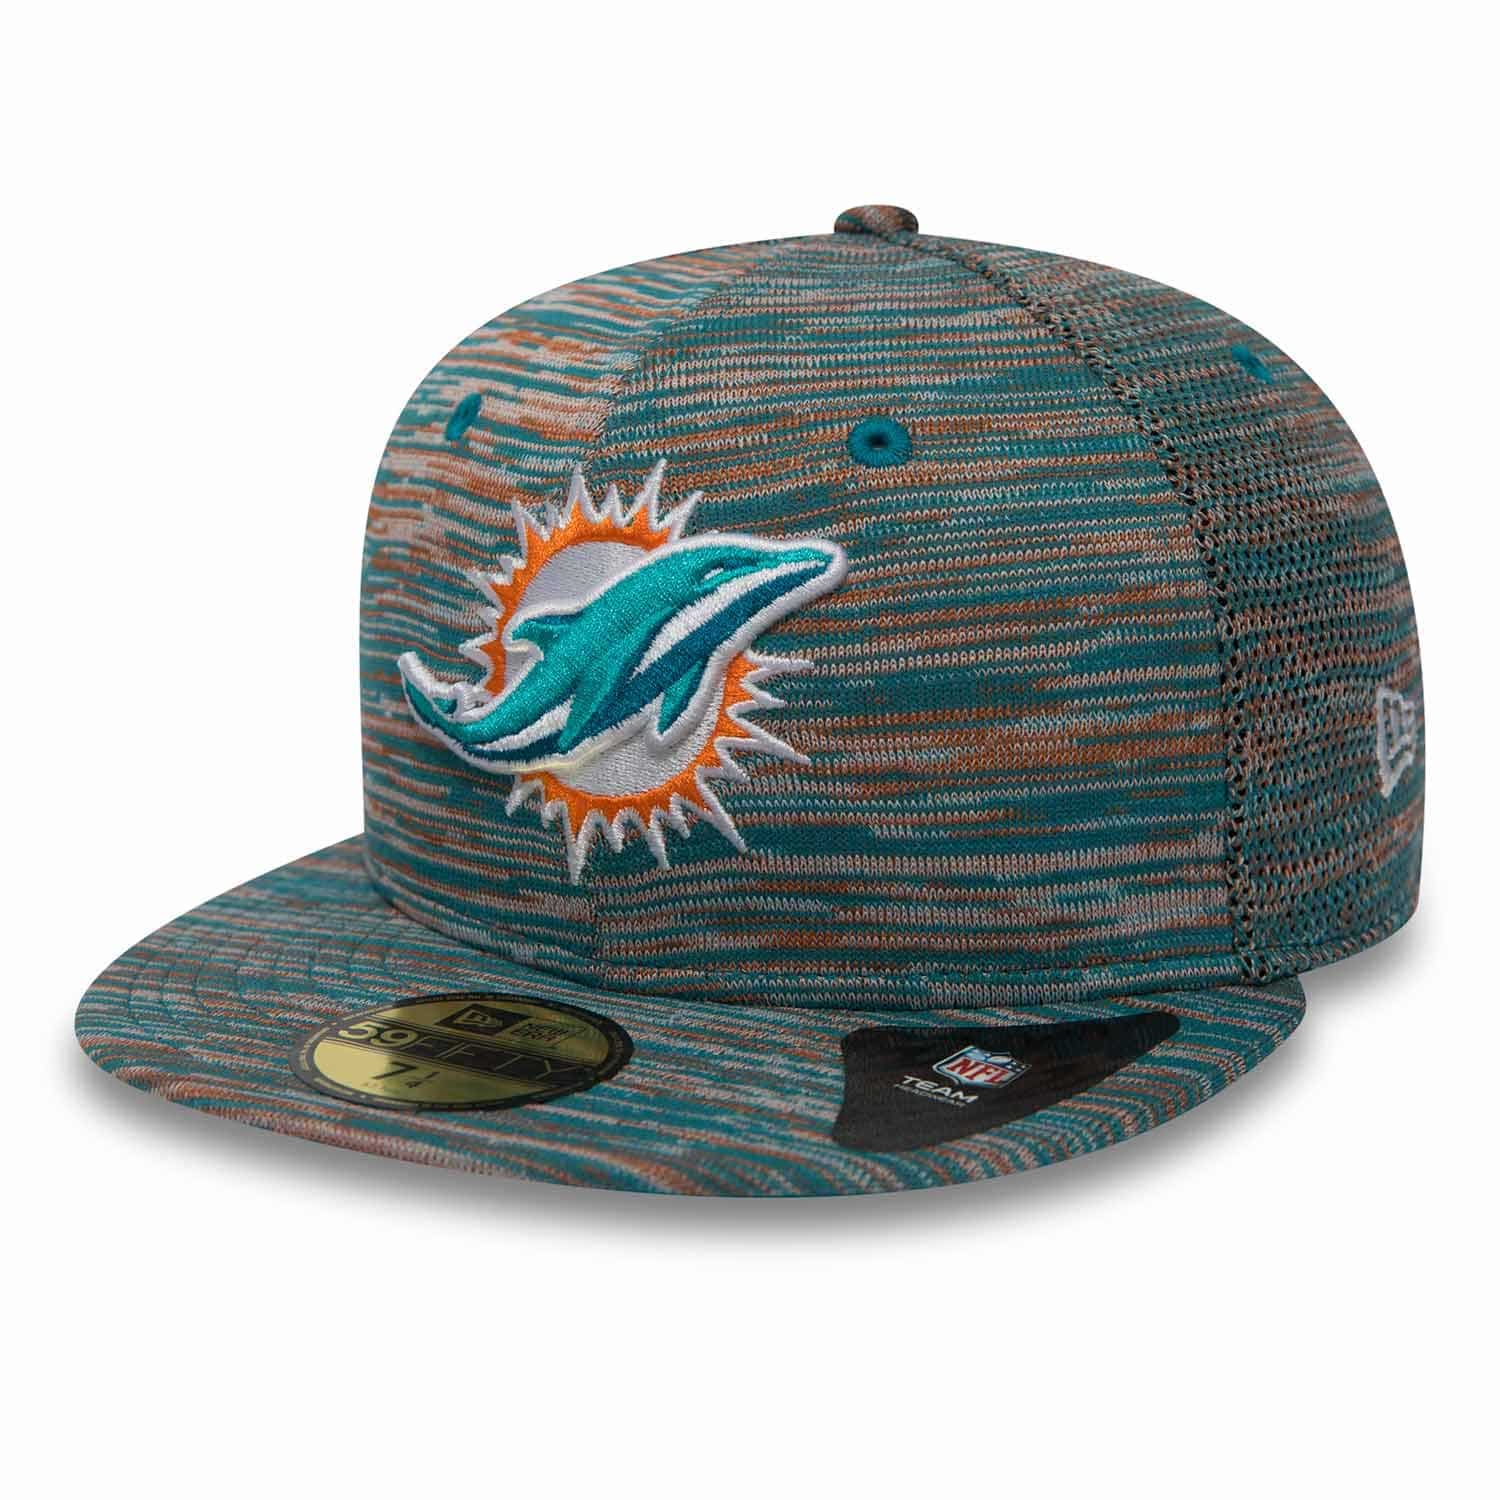 new products cbd26 d35b4 New Era Miami Dolphins Engineered 59FIFTY Fitted NFL Cap   TAASS.com Fanshop